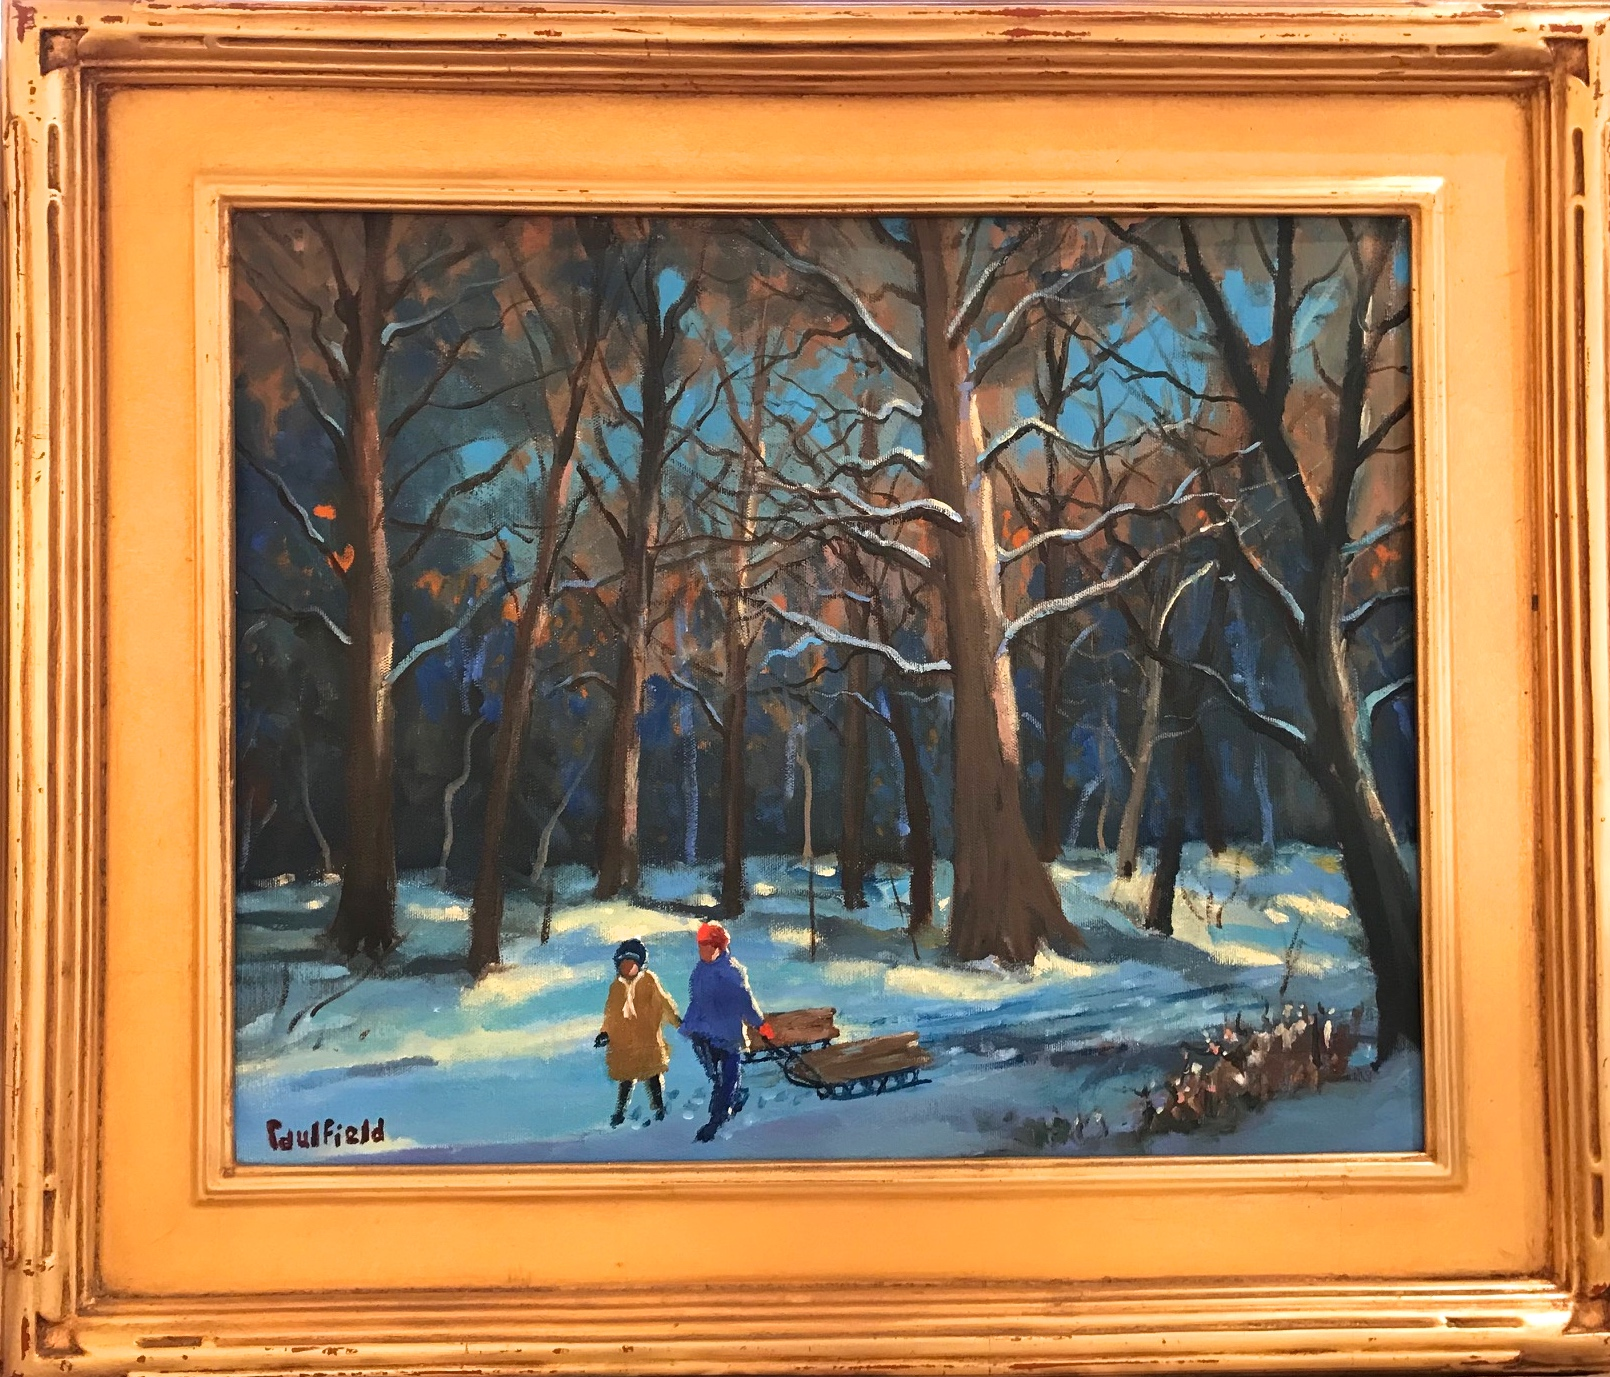 Sledding in the Woods 16x20 $6500